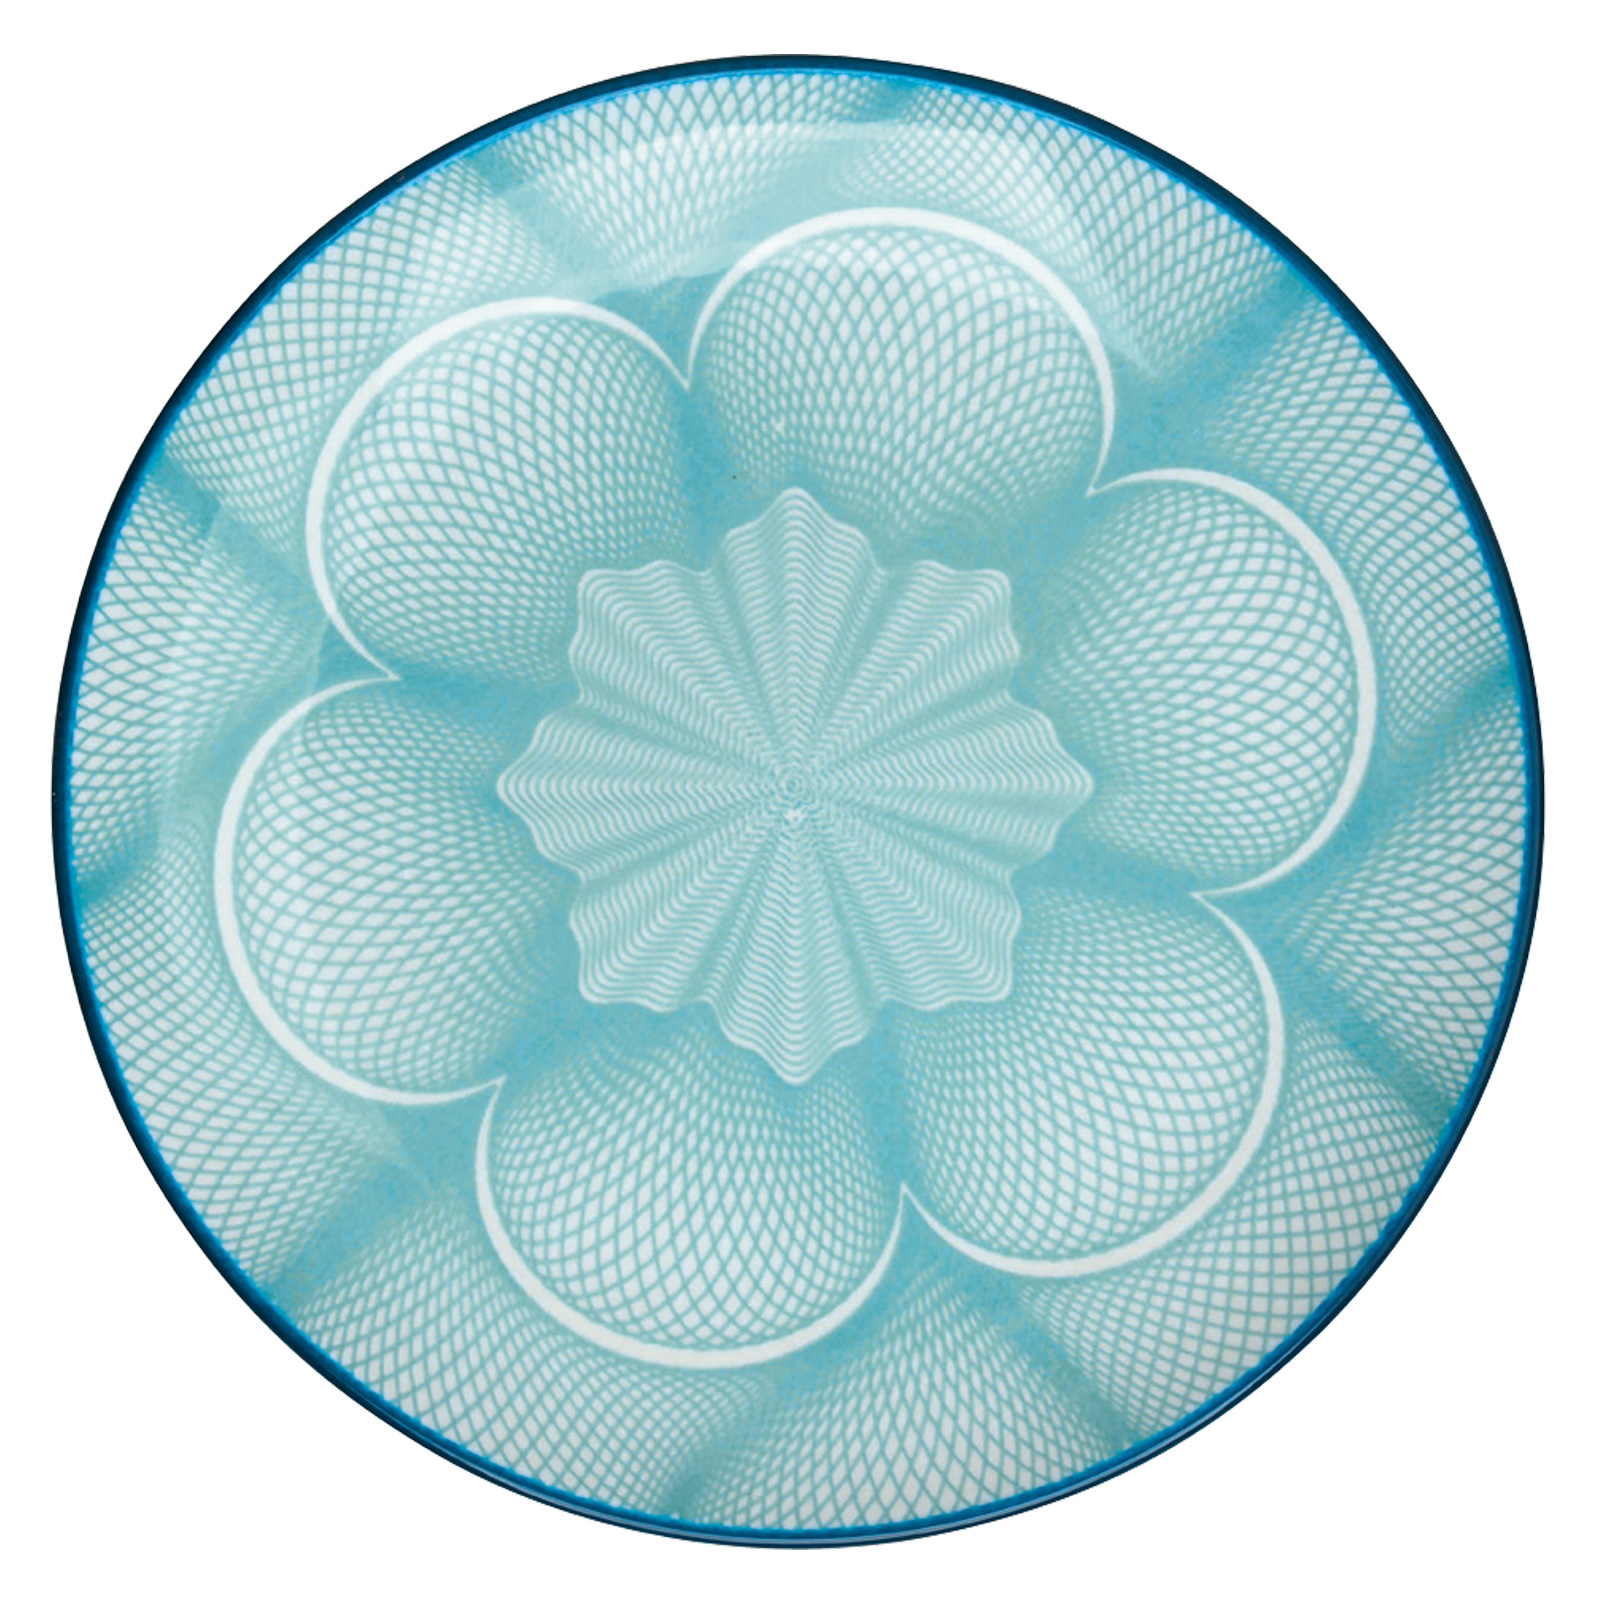 Set of 4 Spyro Plates Blue by BIA